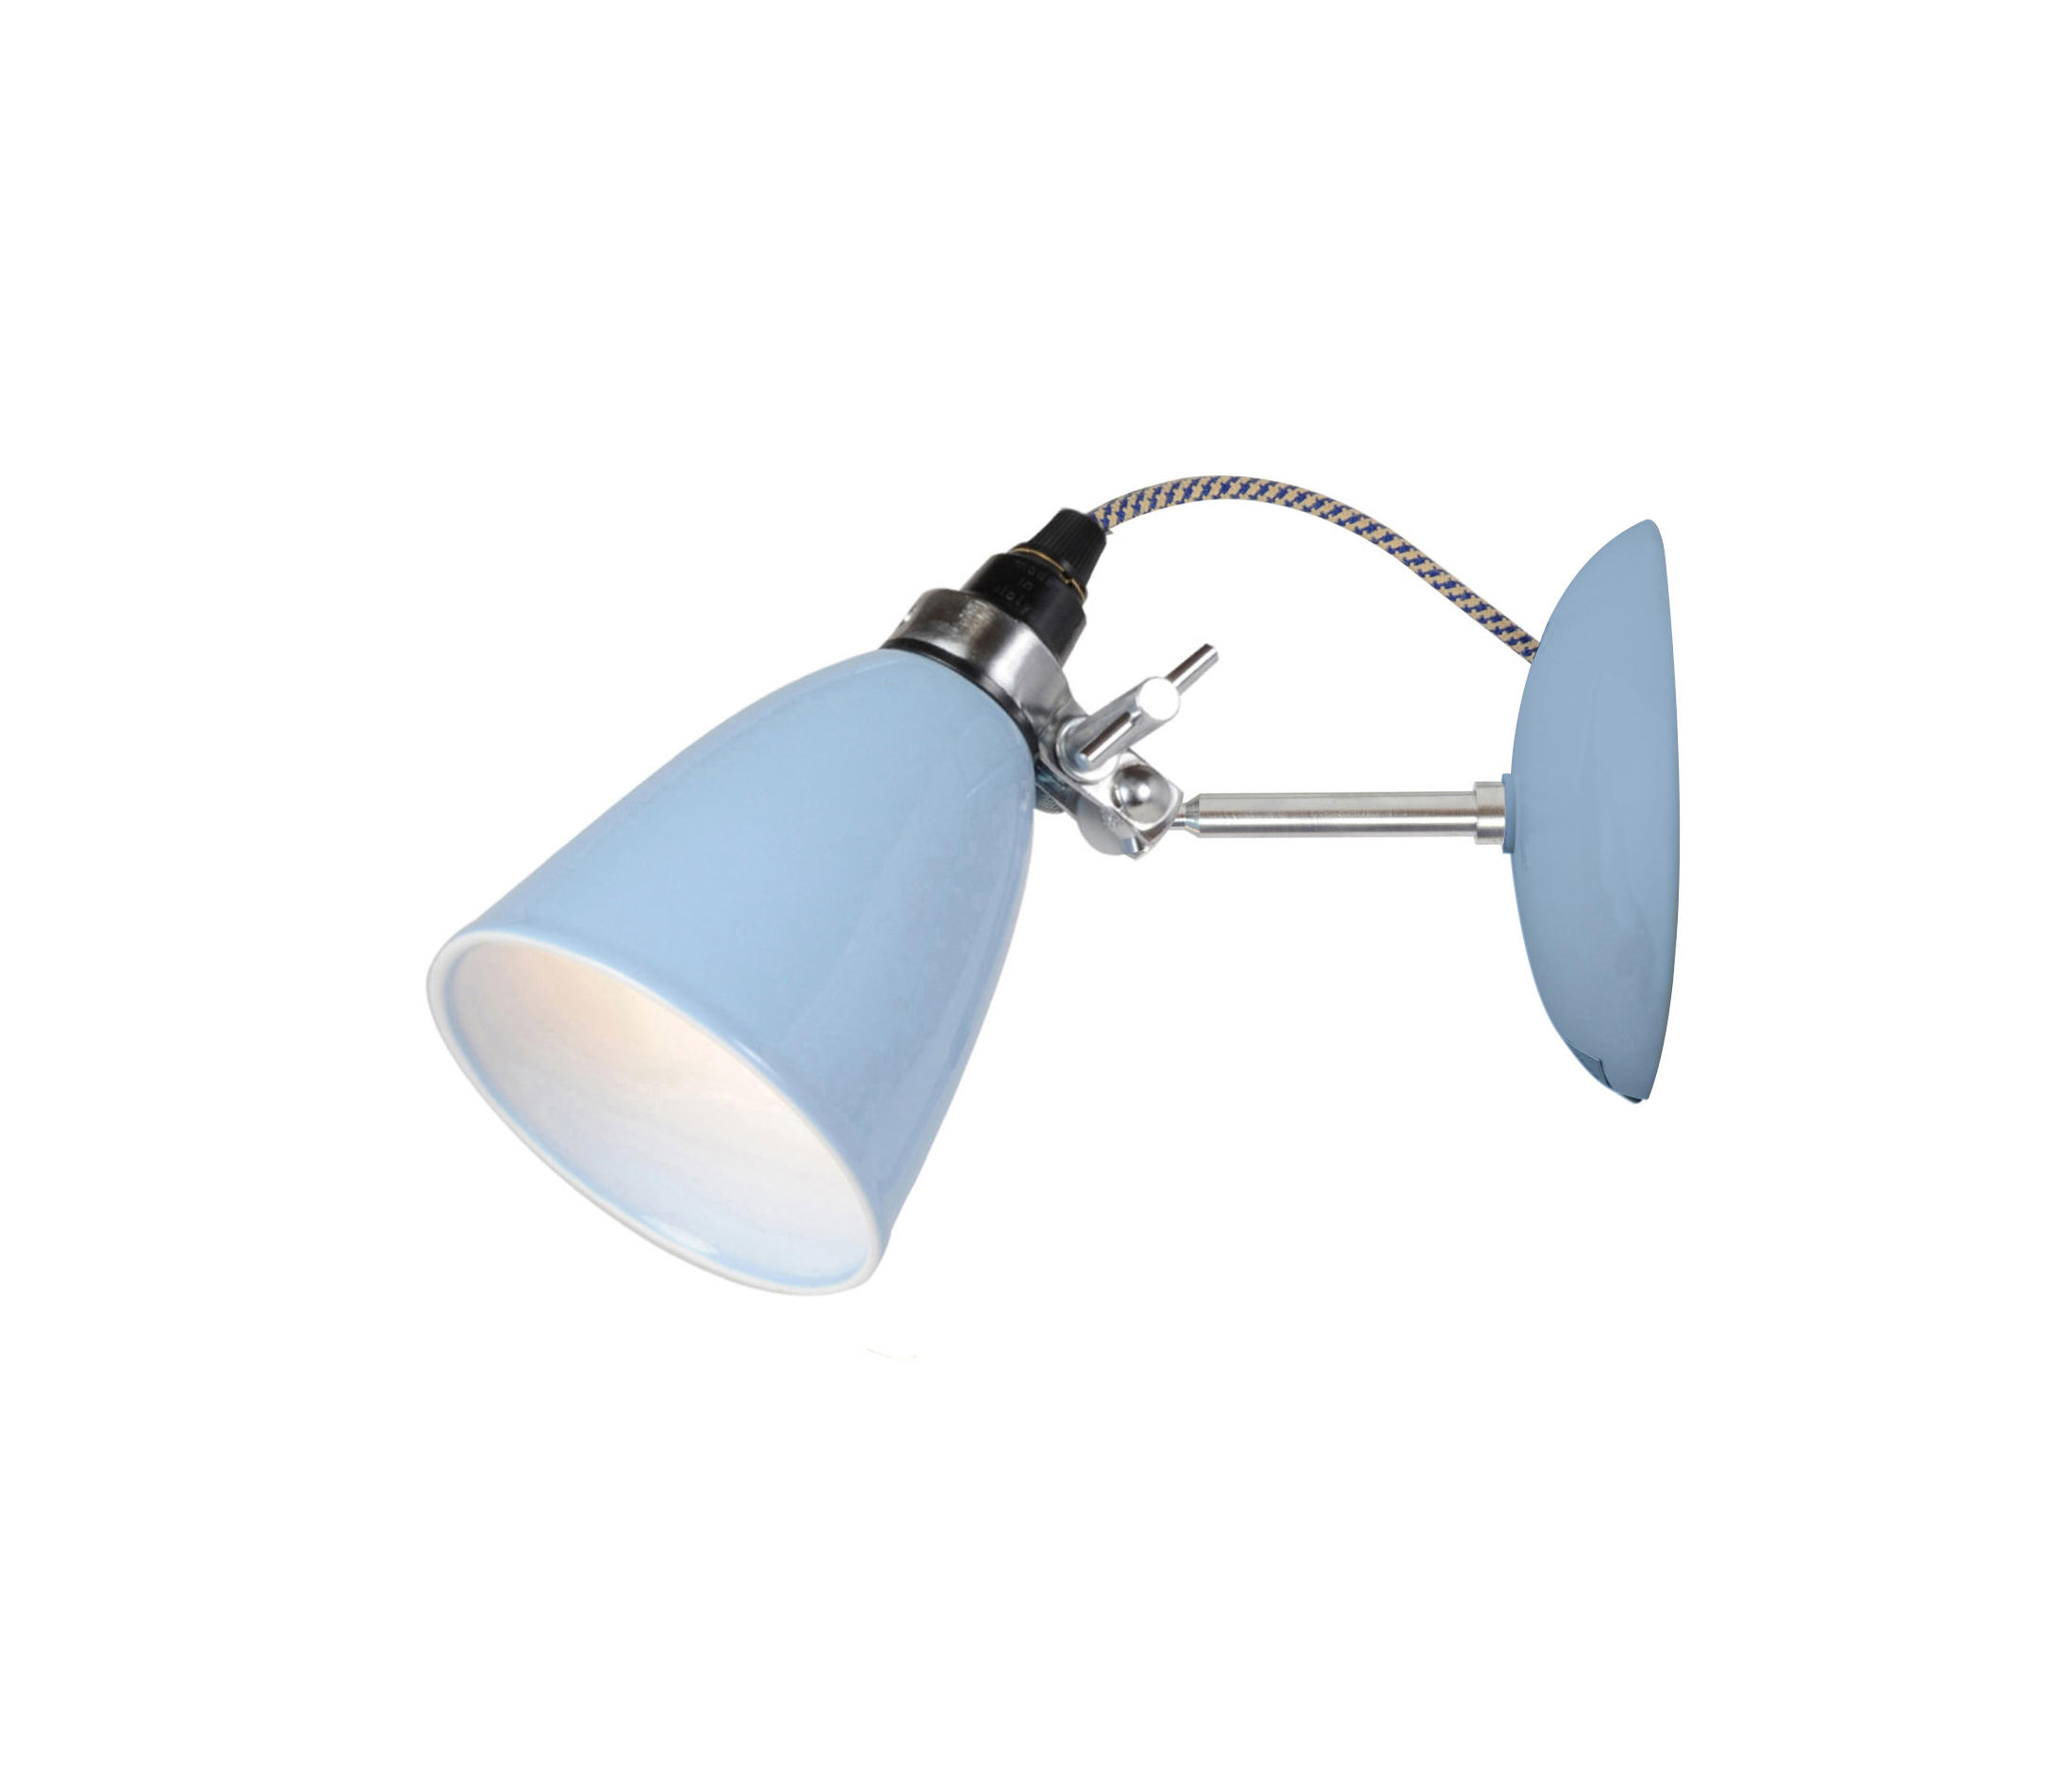 Hector Small Dome Wall Light Blue By Original Btc Lights